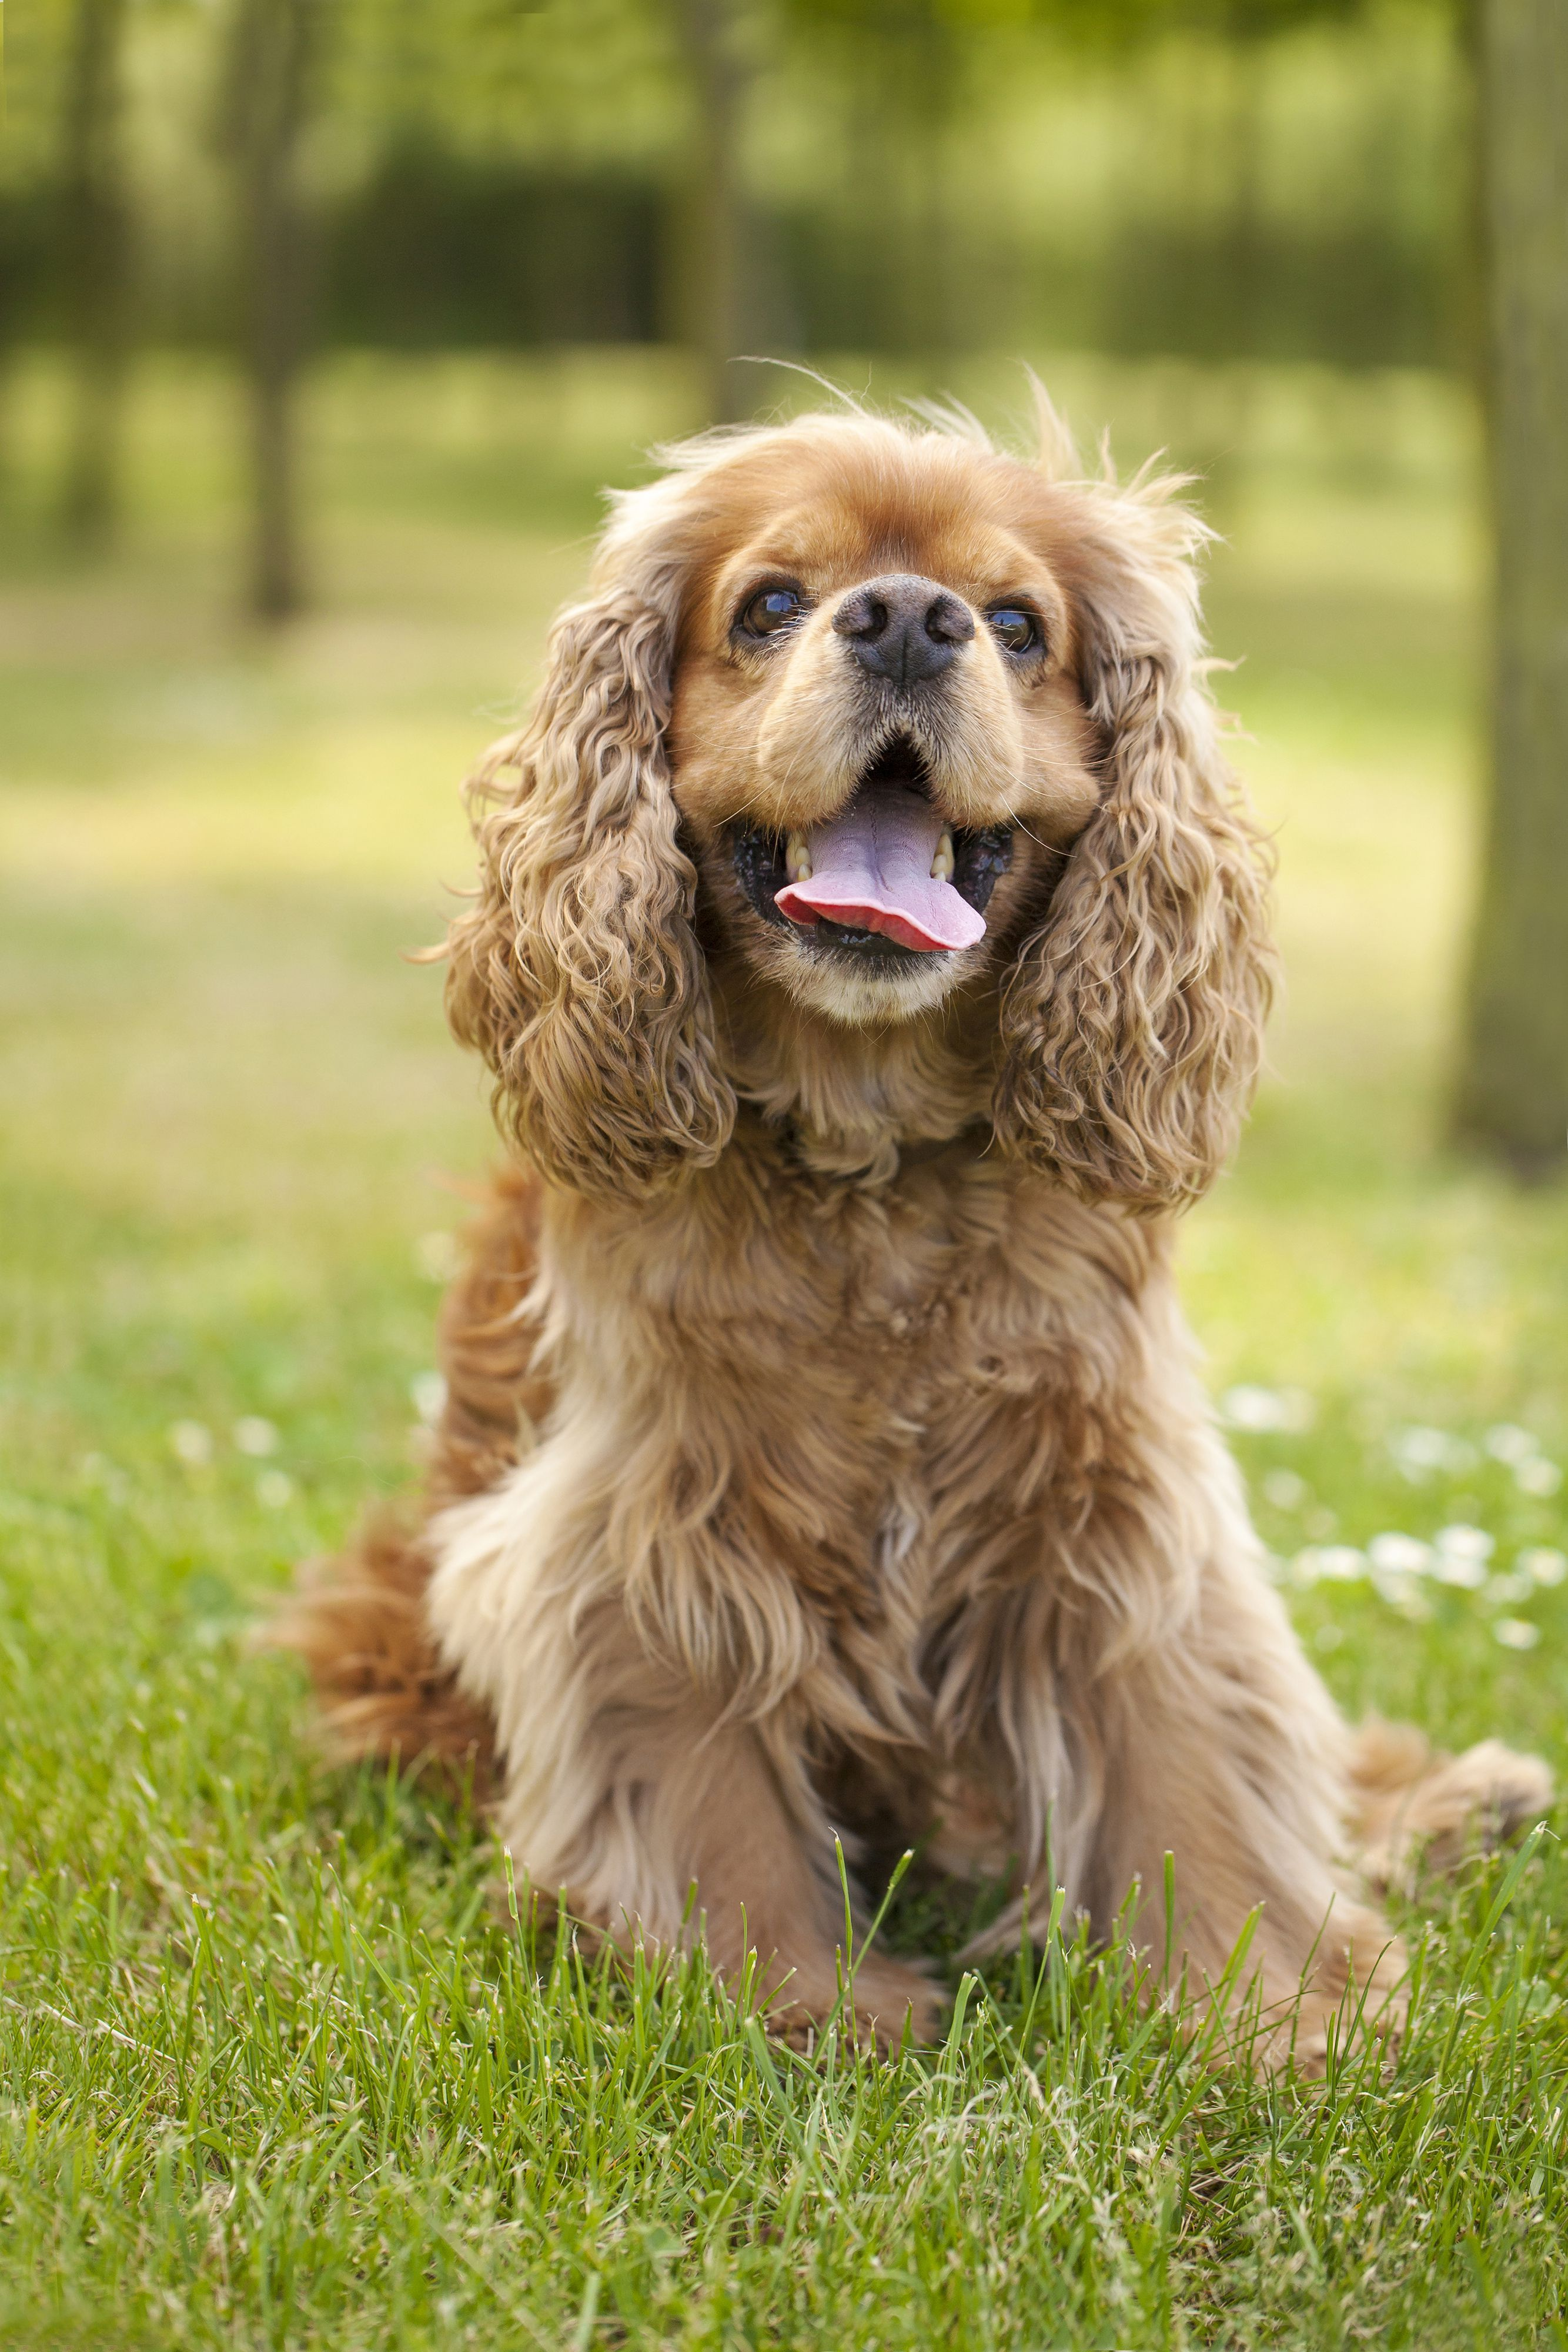 Please visit our website dogs dog breeds puppies dog